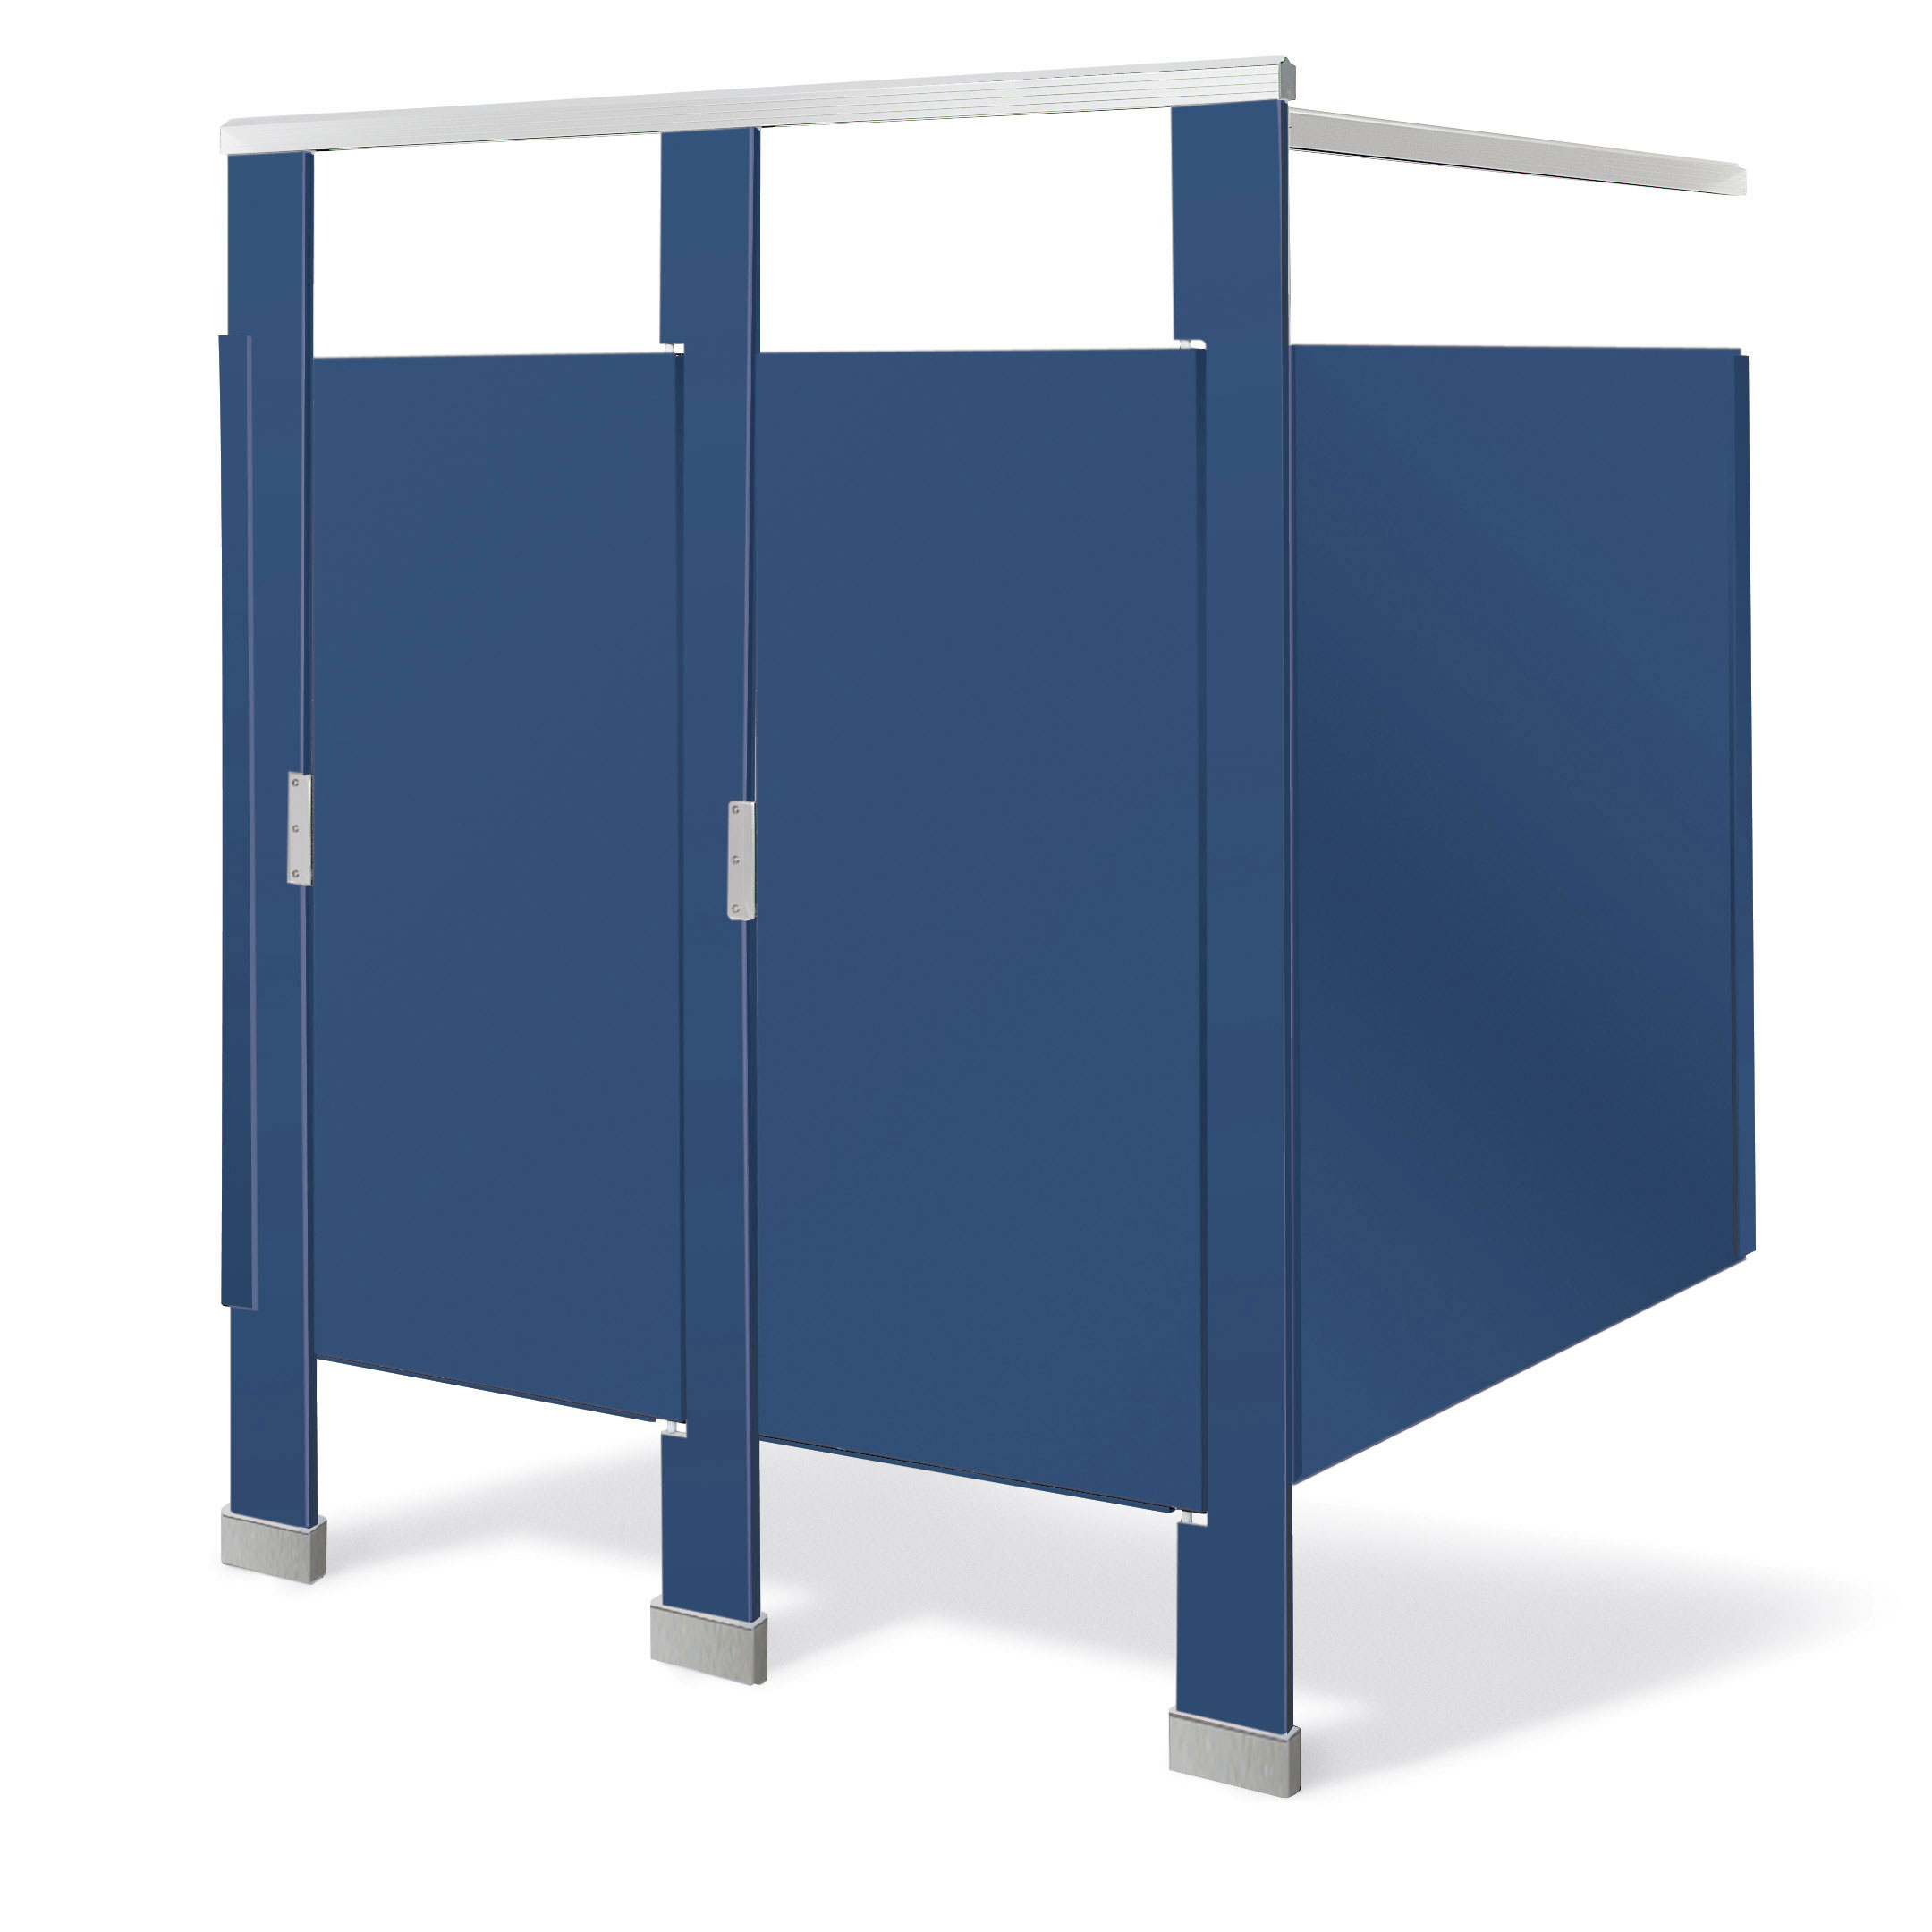 Free Shower Stall Cliparts, Download Free Clip Art, Free.